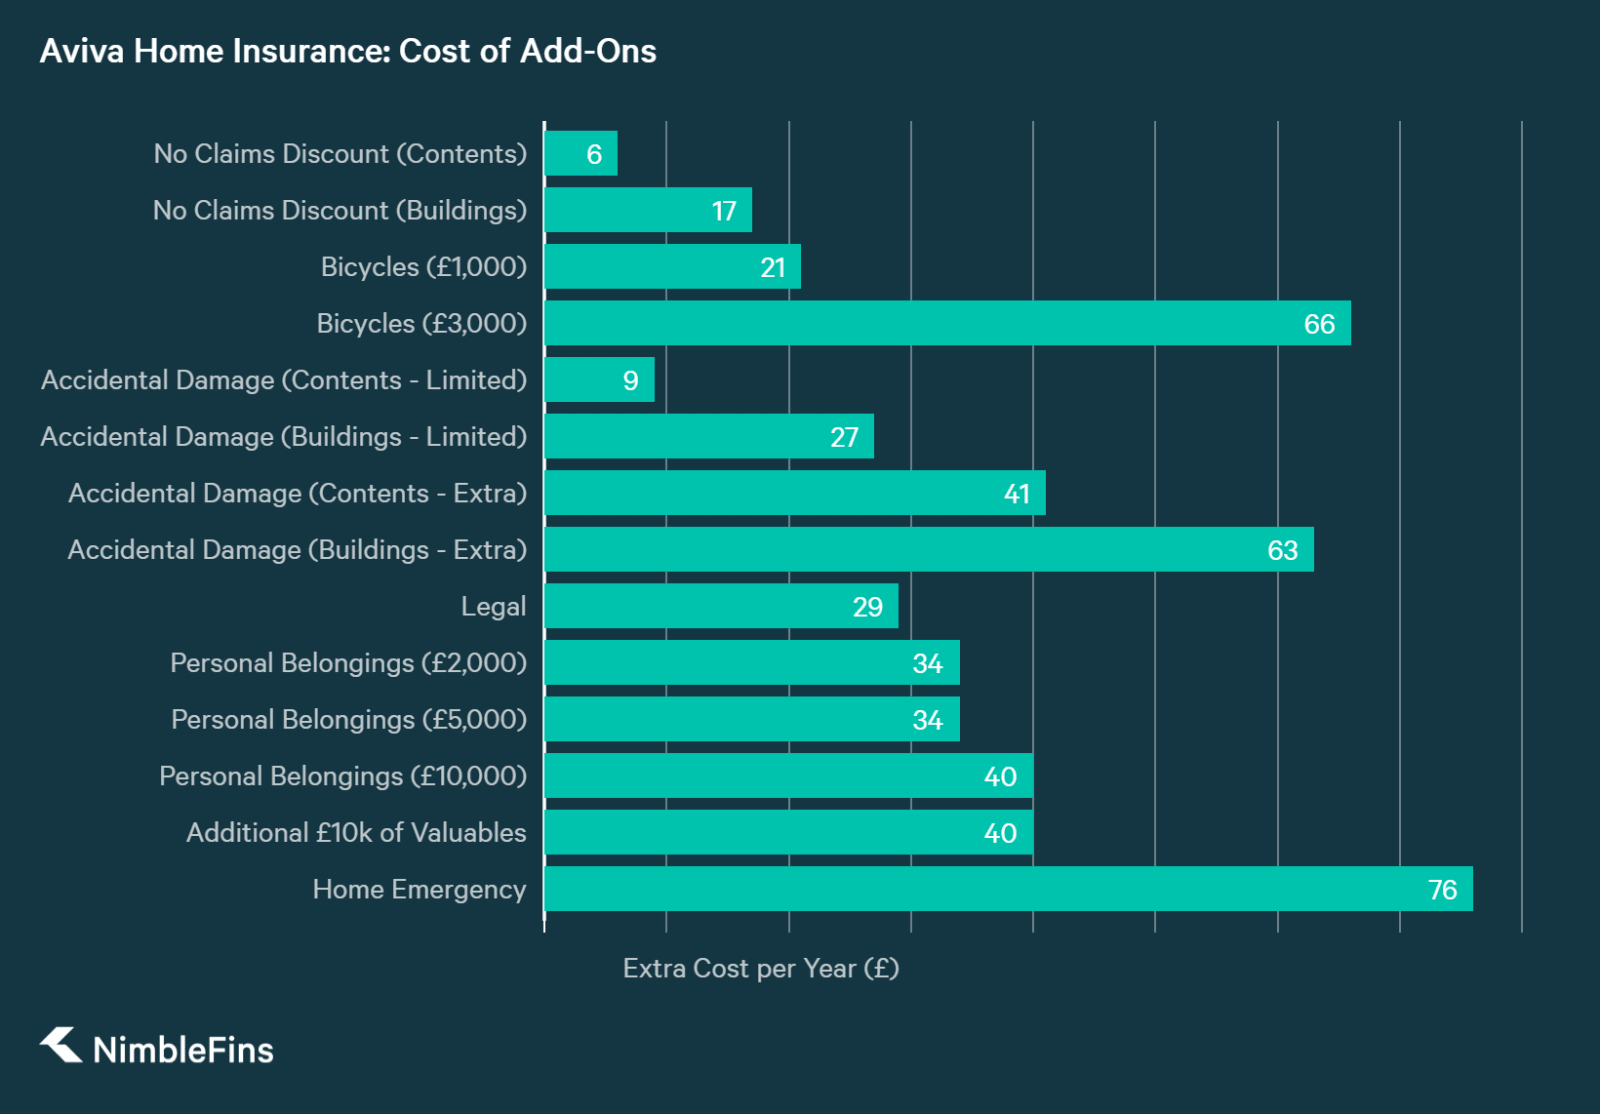 chart showing approximate cost of home insurance add ons for aviva home insurance